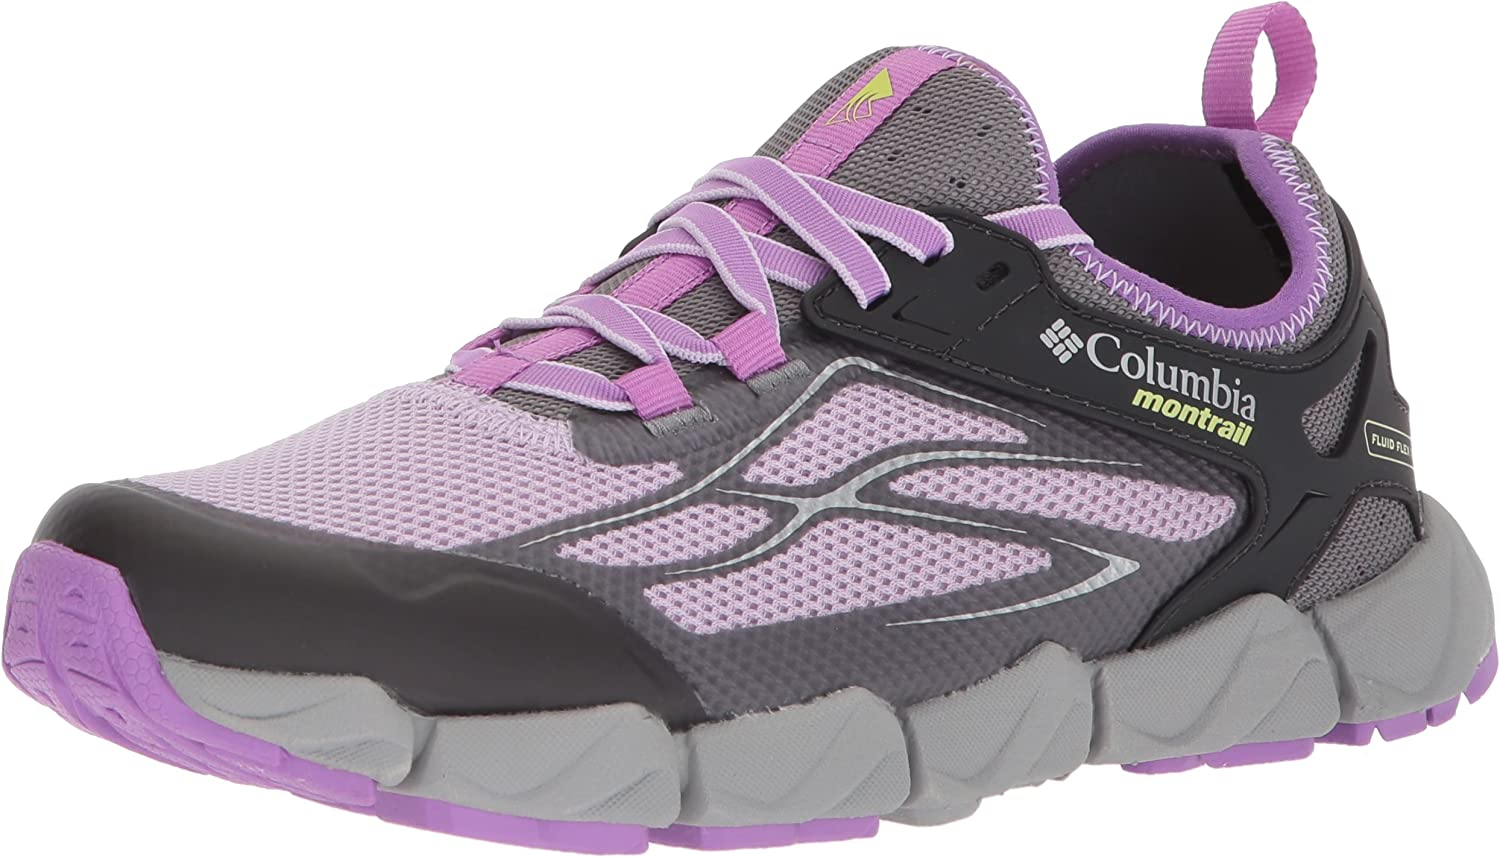 Columbia Women s Fluidflex X.S.R. Trail Running Shoe, Phantom Purple, Nappa Green, 8.5 B US